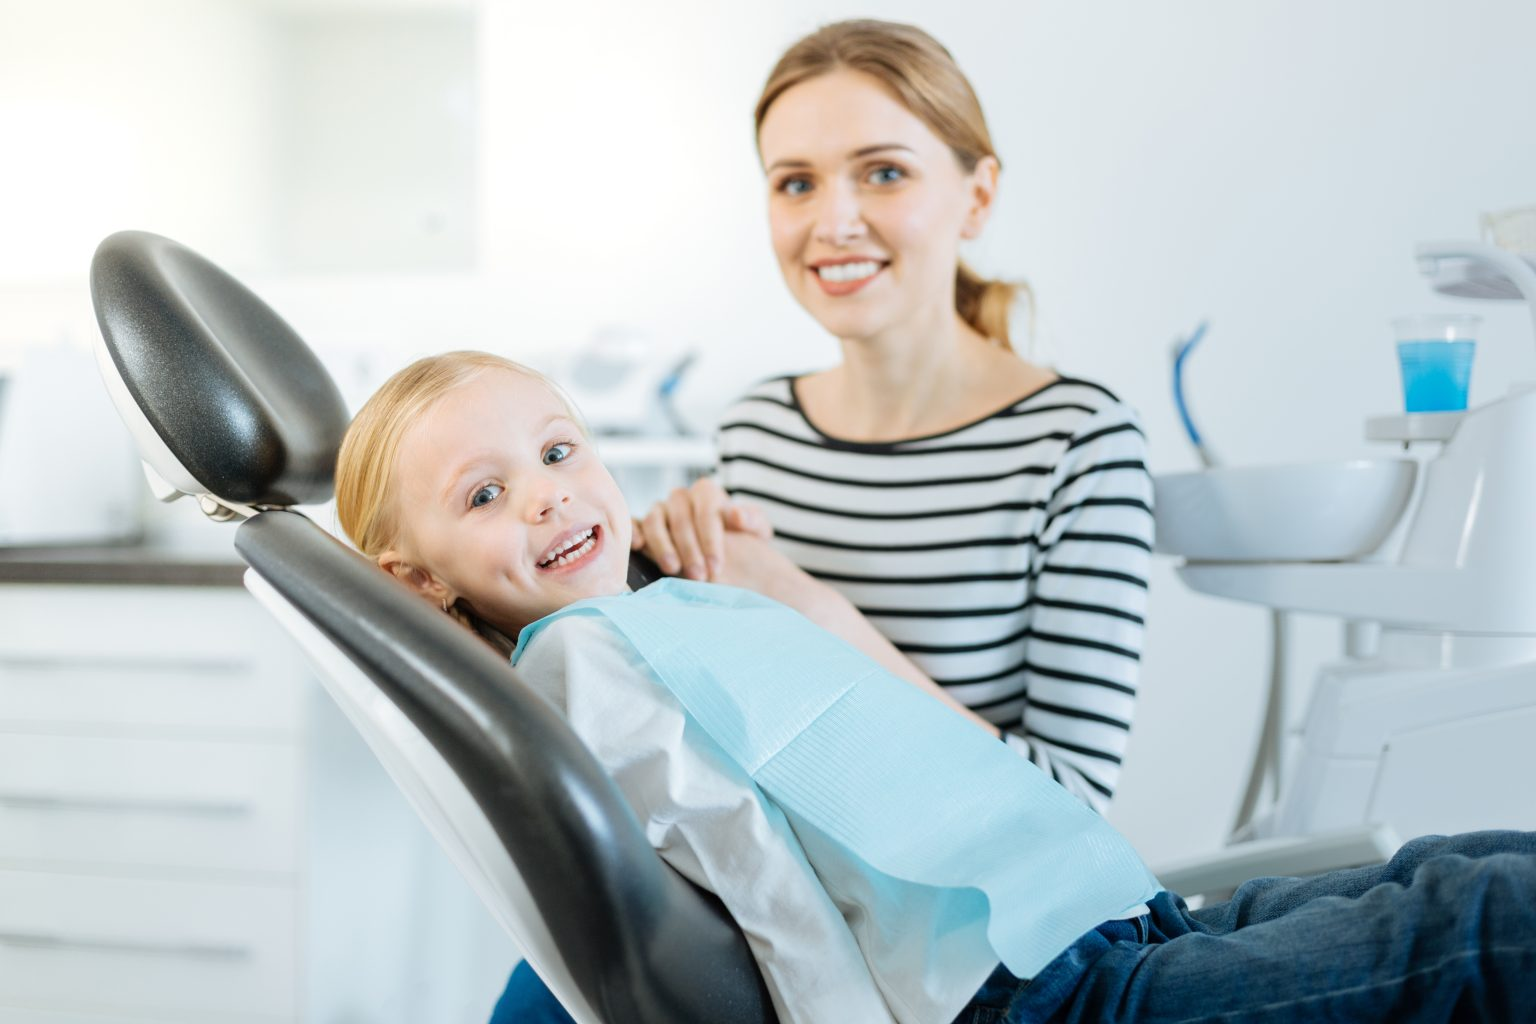 Cute Little Patient And Her Mother Posing In Dentist Office